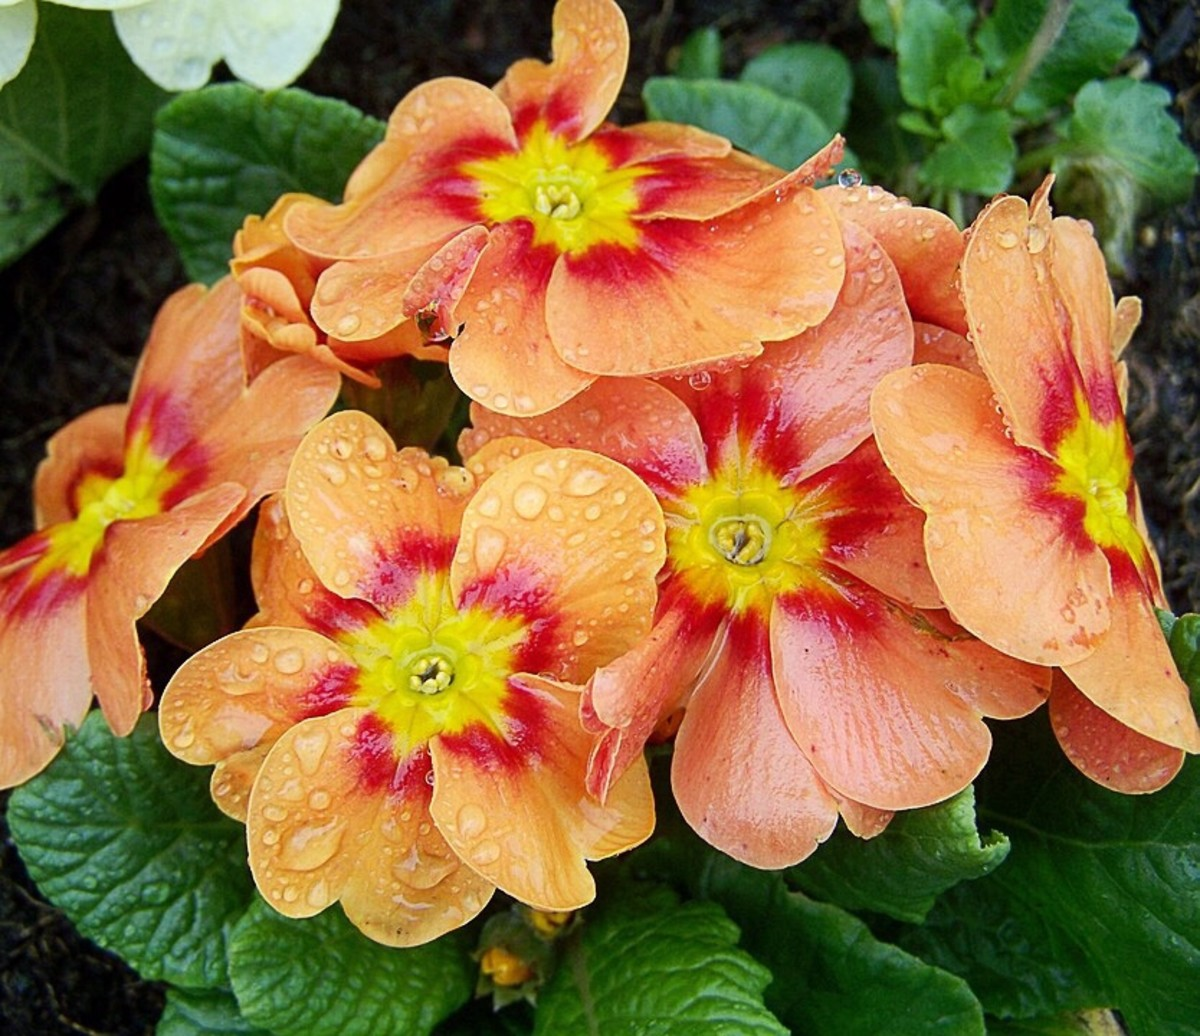 Another primula